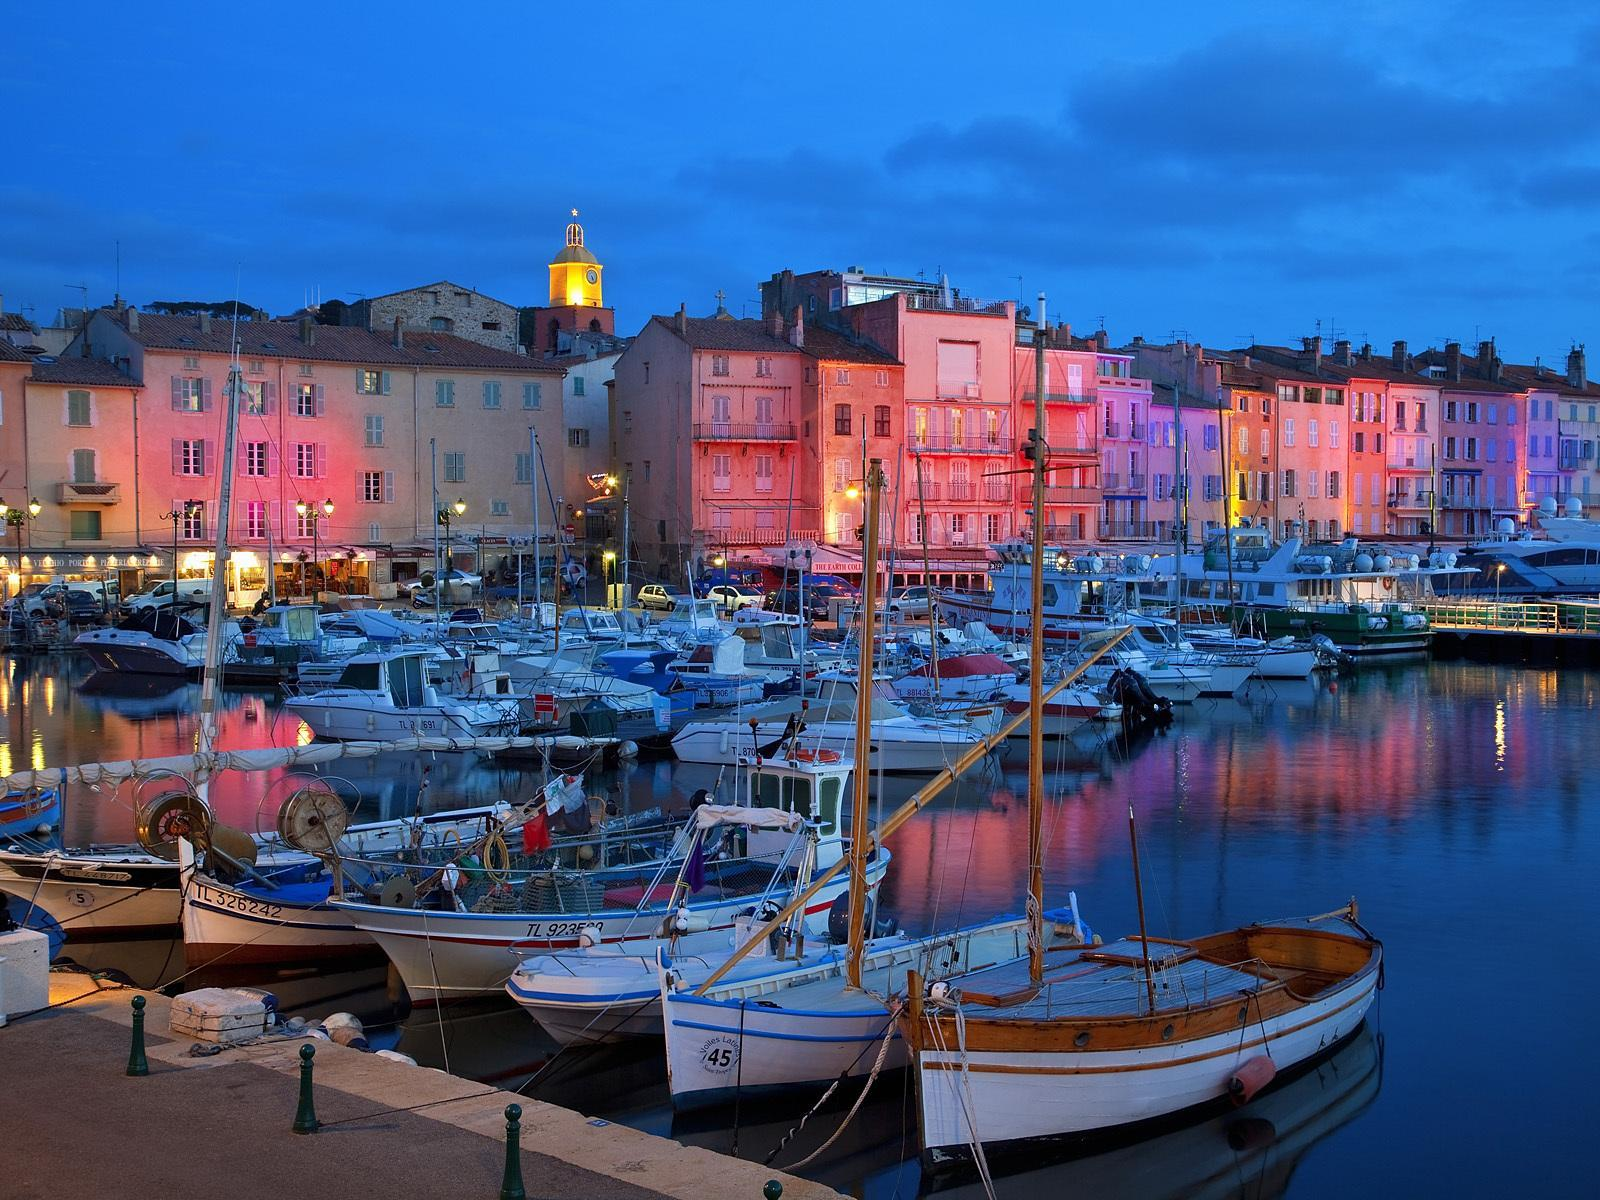 St Tropez Live Wallpaper for Android   APK Download 1600x1200